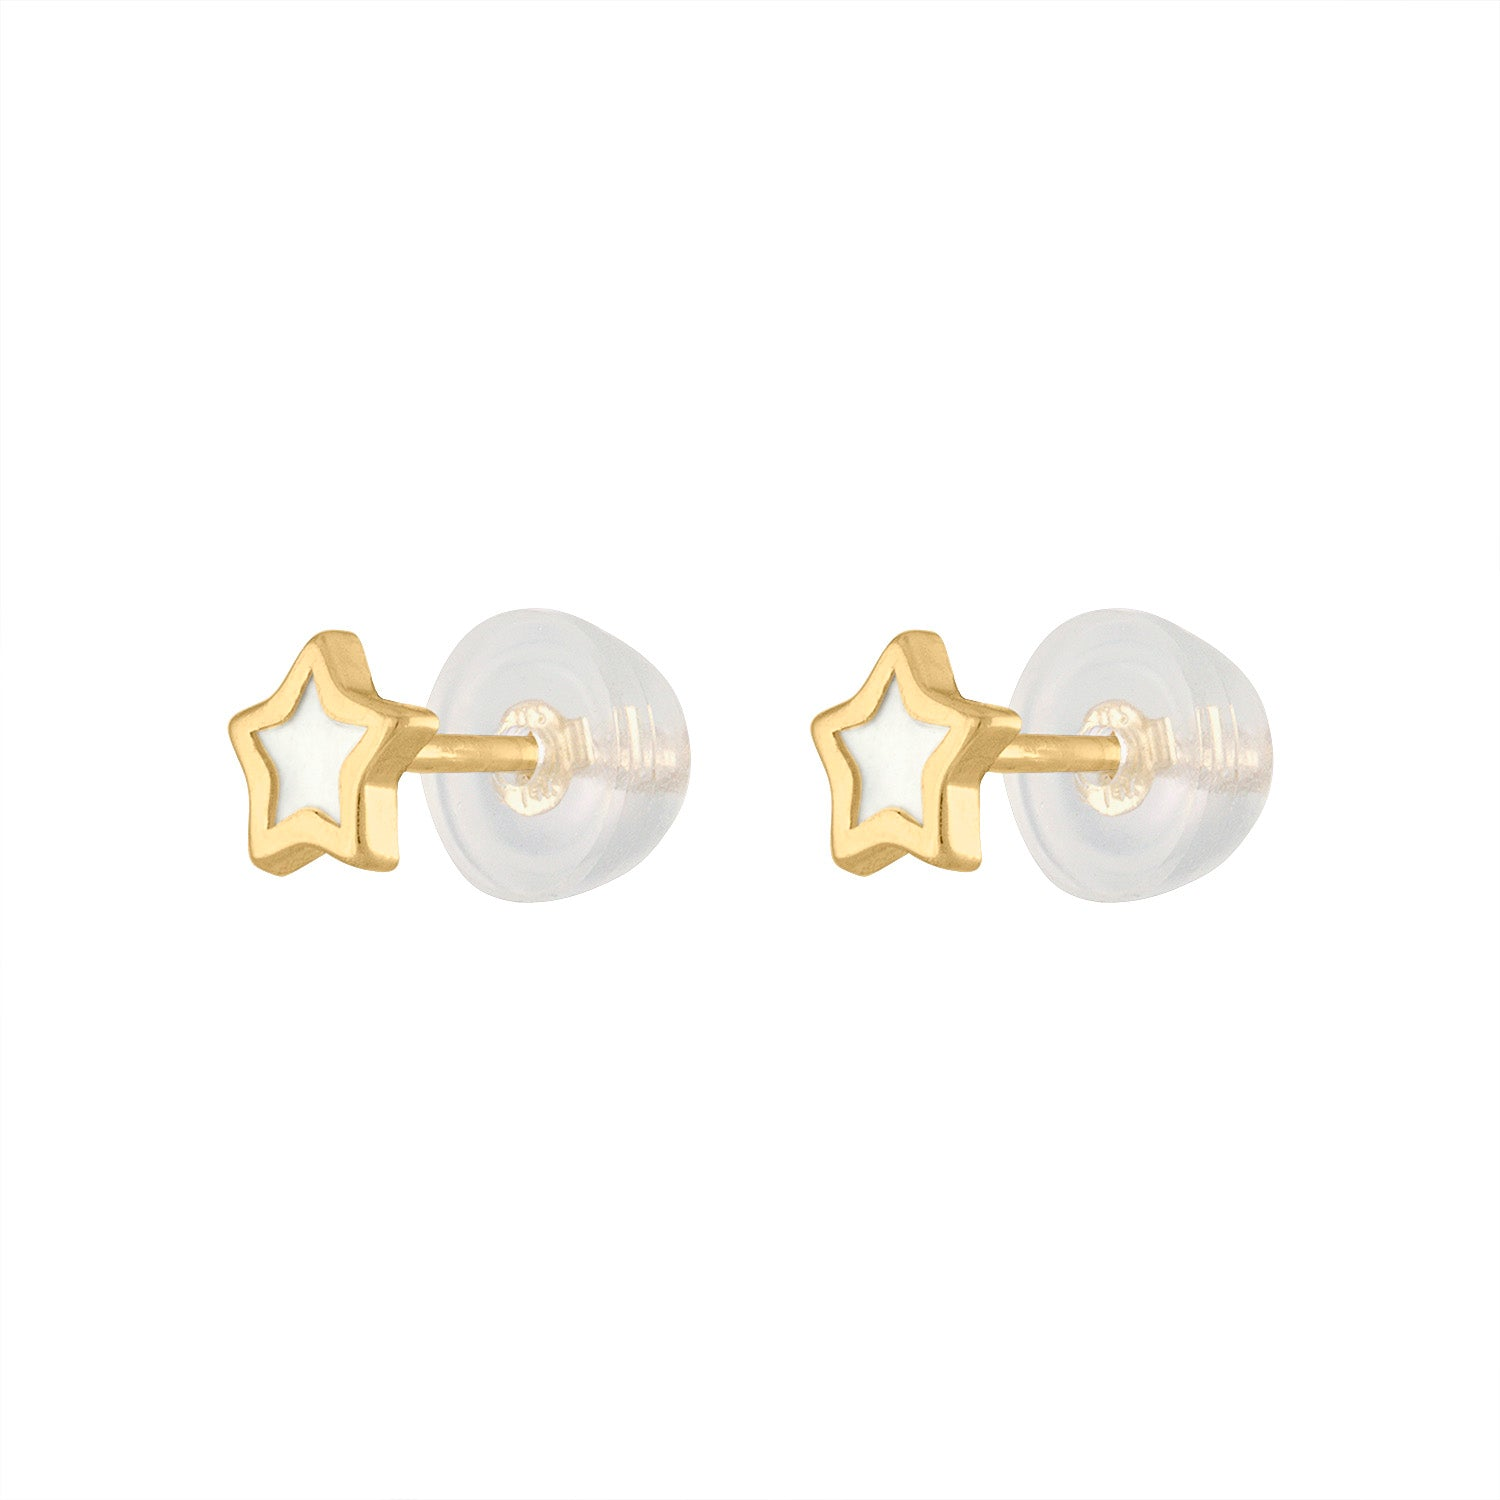 14KT GOLD MOTHER OF PEARL MINI STAR STUD EARRING